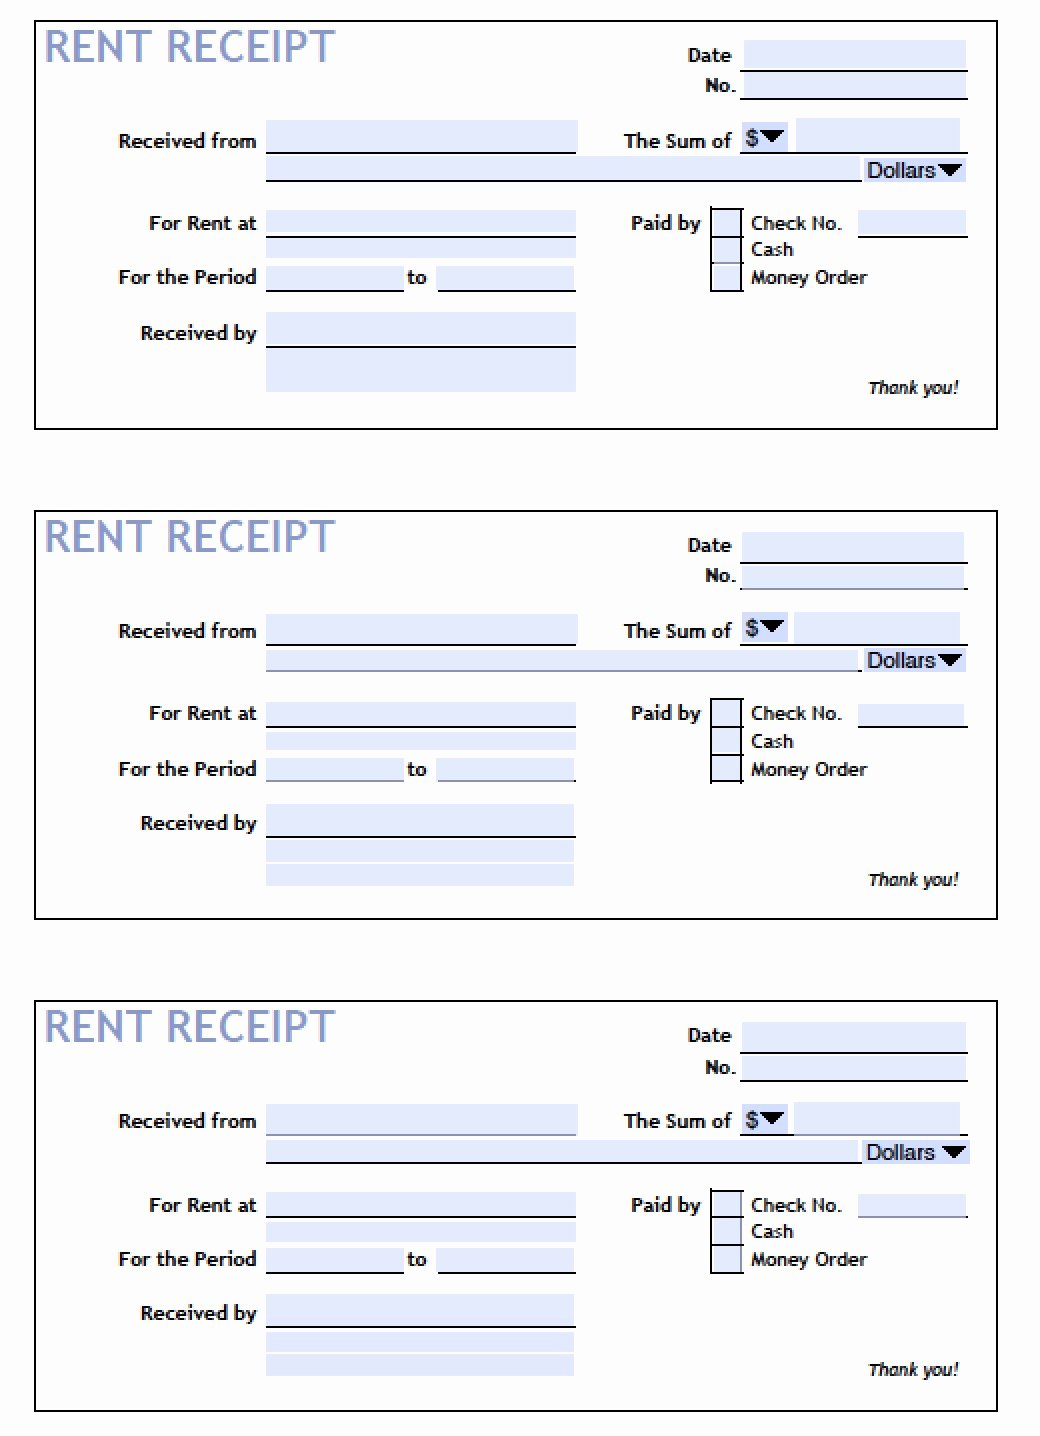 Rent Receipt Template Doc Lovely Download Printable Rent Receipt Templates Pdf